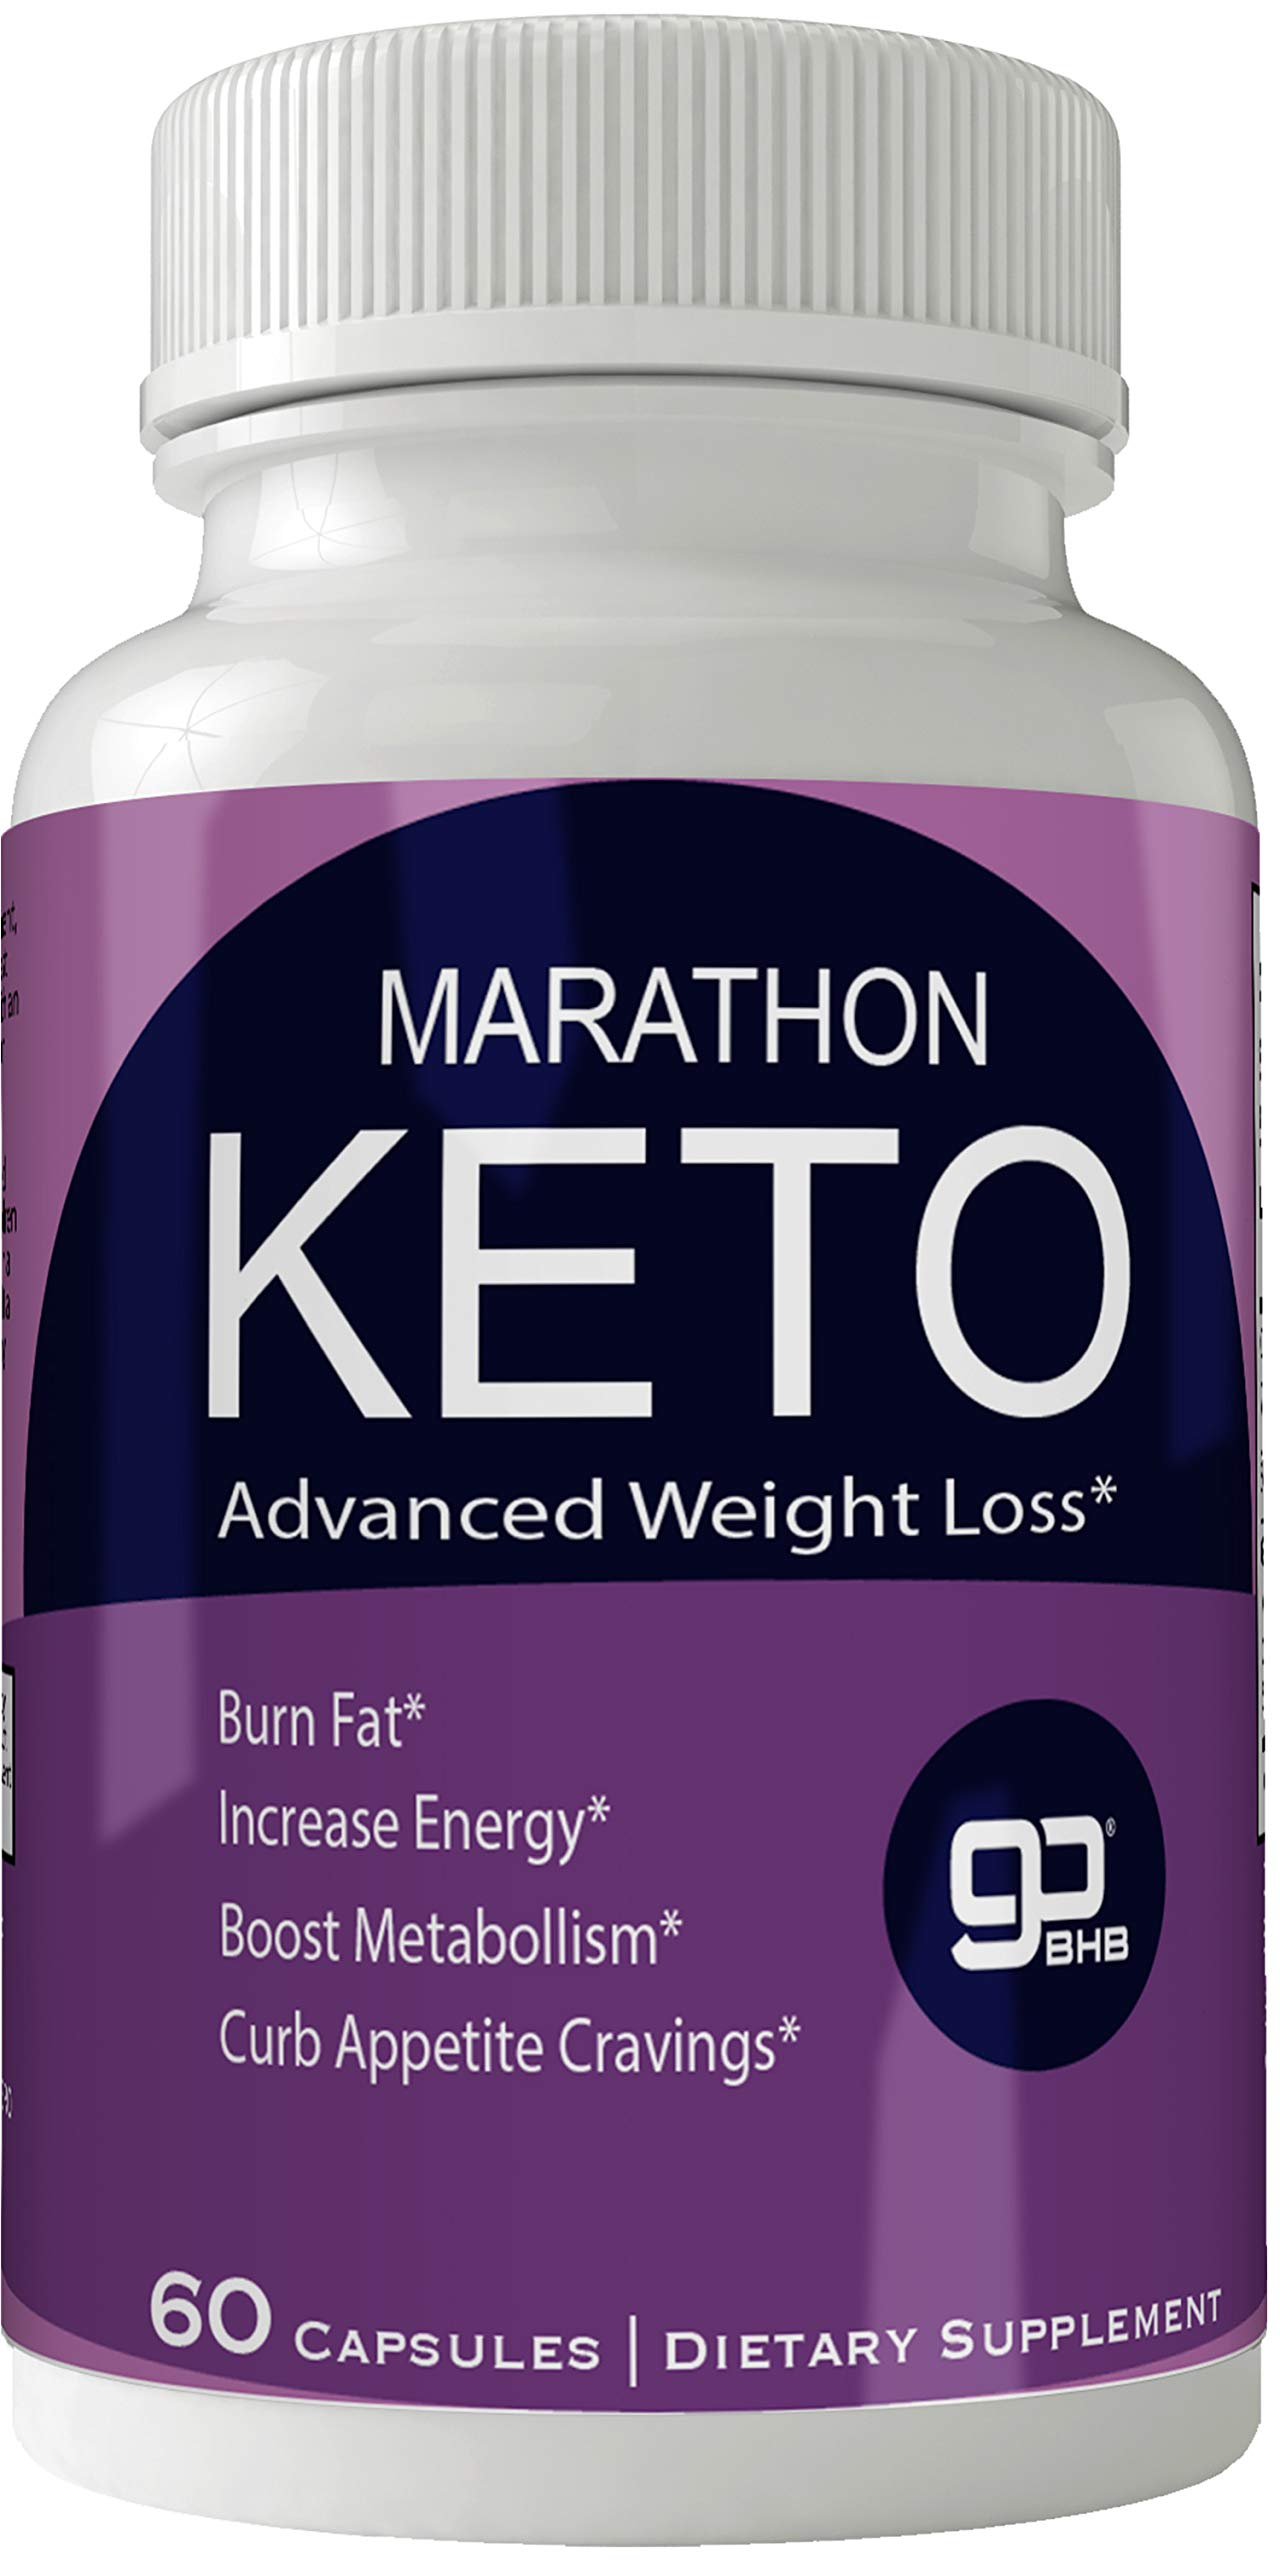 Marathon Keto Advanced Natural Ketogenic Weight Loss Pills for Women and Men, BHB Burn Fat Supplement, 800 mg Formula with New True Slim GO BHB Salts Formula, Advanced Appetite Suppressant Capsules by nutra4health LLC